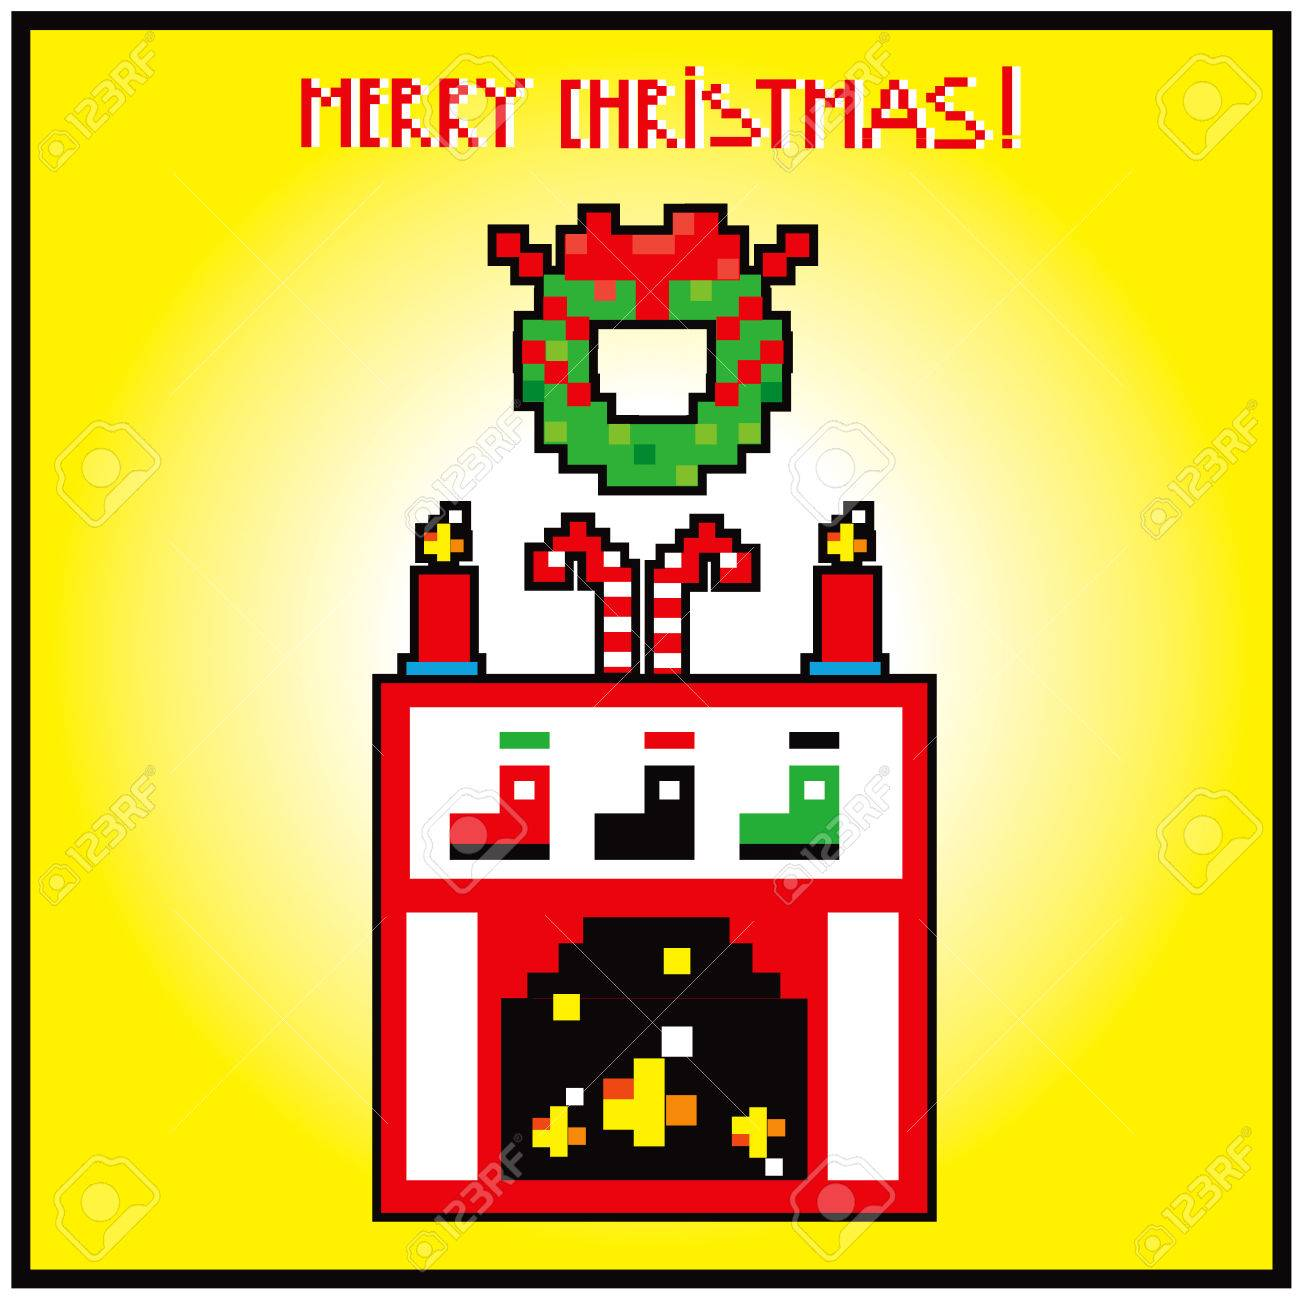 Pixel Art Xmas Home Sweet Home Rairplace Background Card Merry